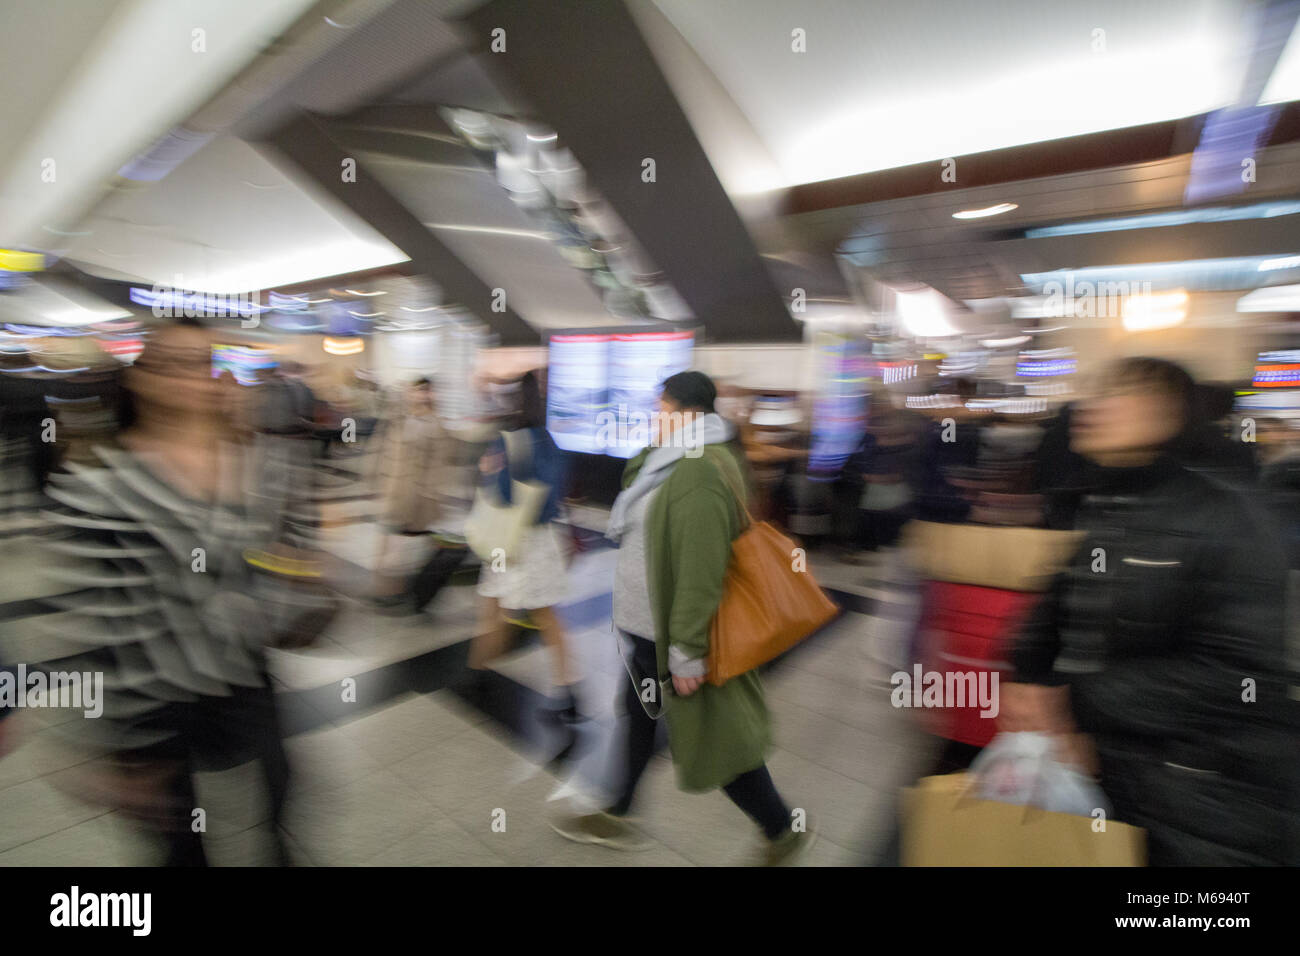 The busy concourse of Osaka train station, Japan, as people rush for trains. - Stock Image